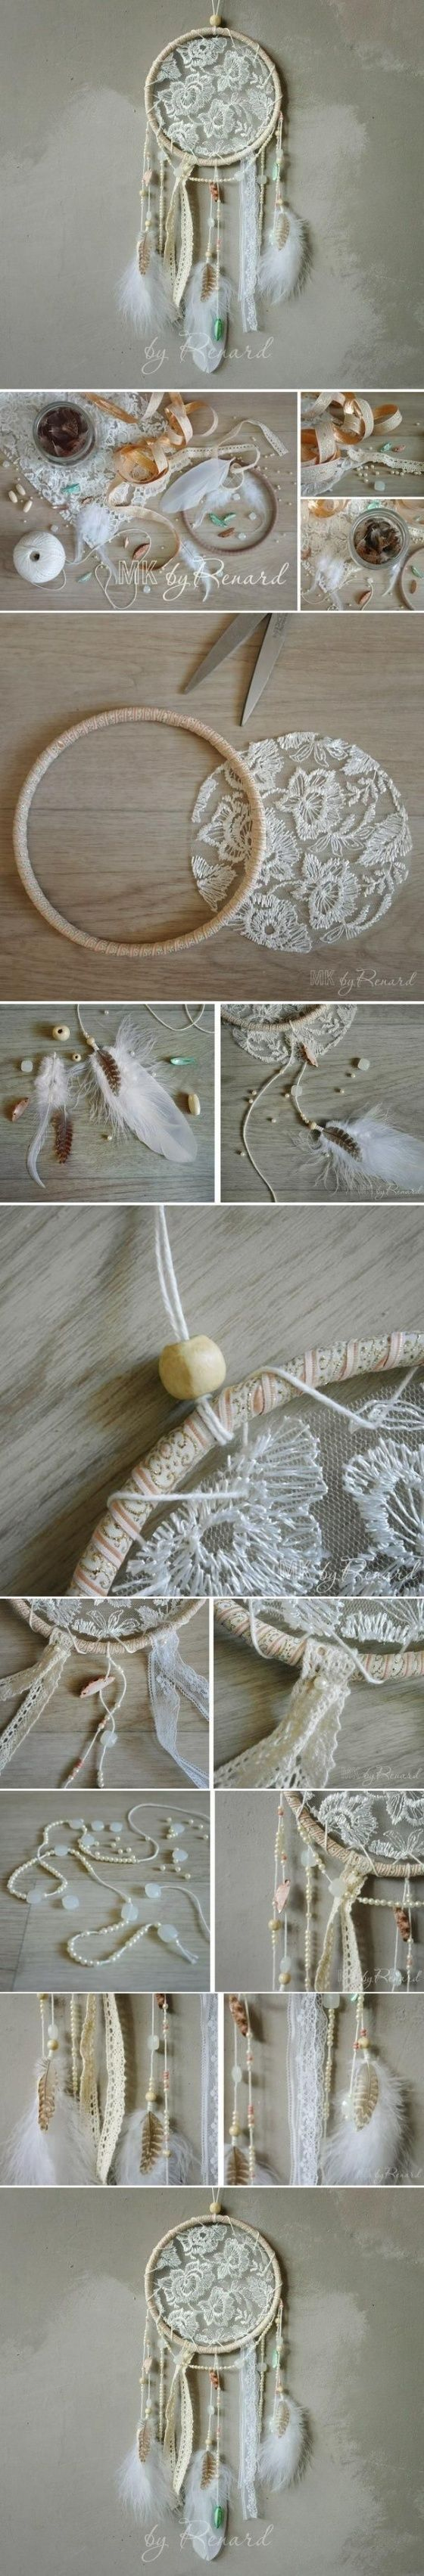 DREAM CATCHER - FABRIC This dream catcher uses fabric rather than tying rope designs through the center.  {DIY~Elegant Dreamcatcher}